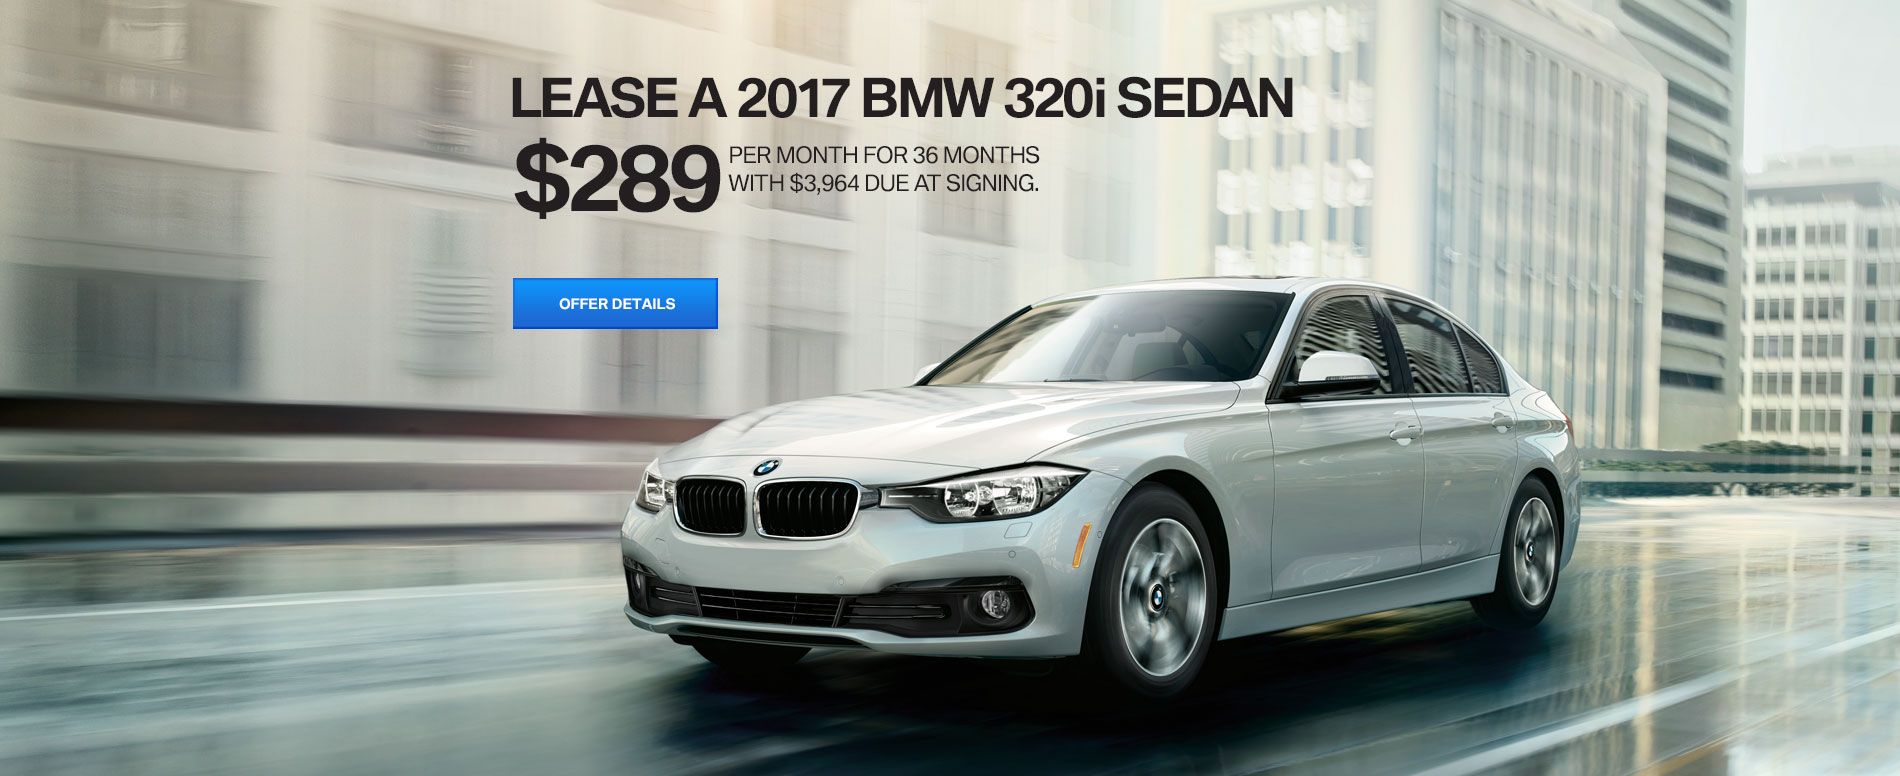 LEASE A 2017 320i SEDAN FOR $289/MO FOR 36 MONTHS